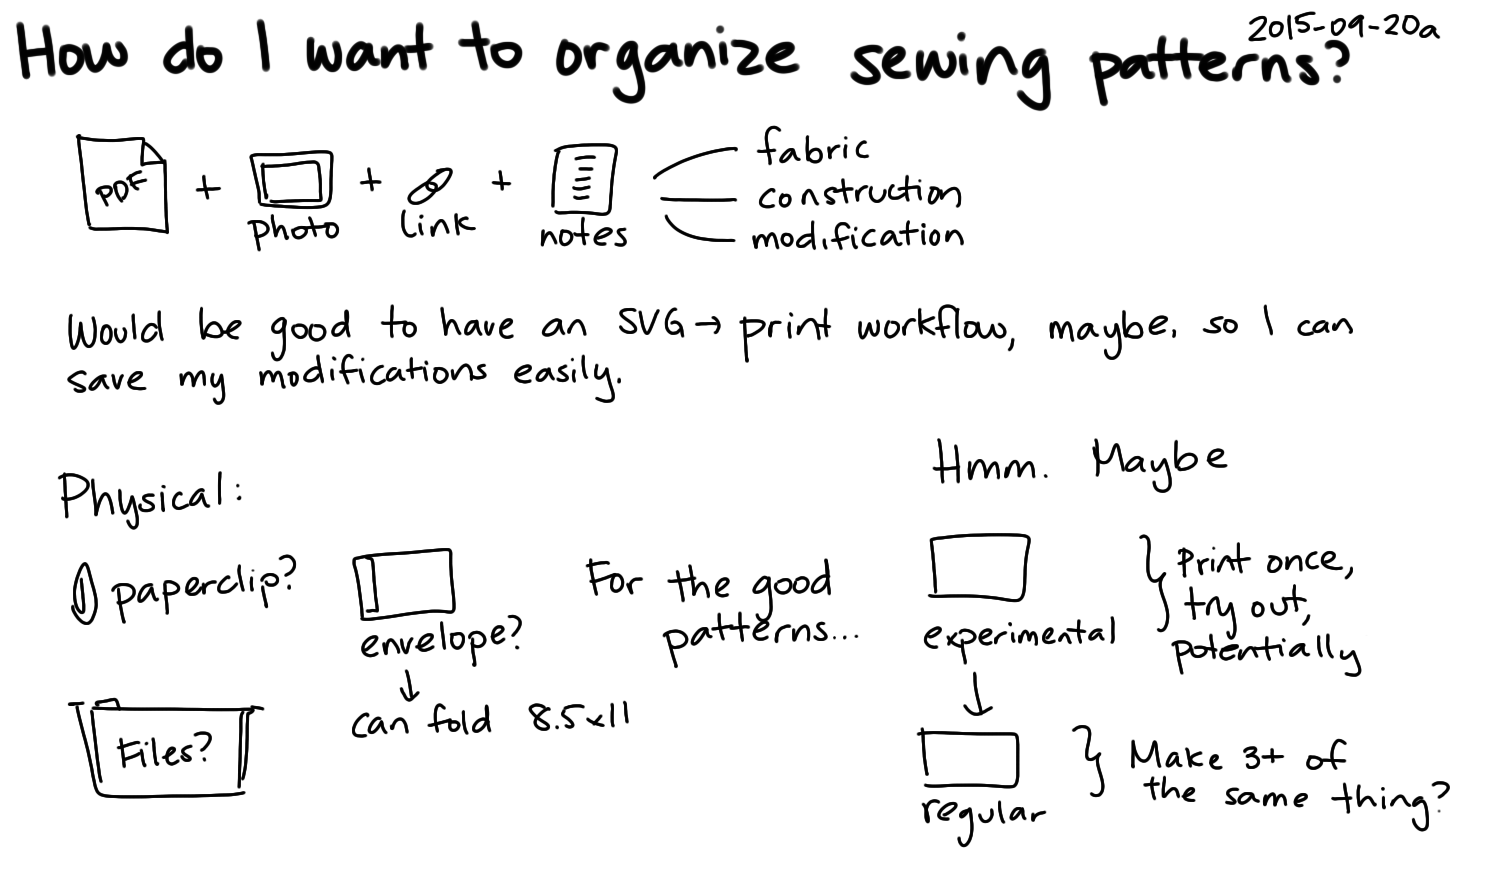 2015-09-20a How do I want to organize sewing patterns -- index card #sewing #organization.png